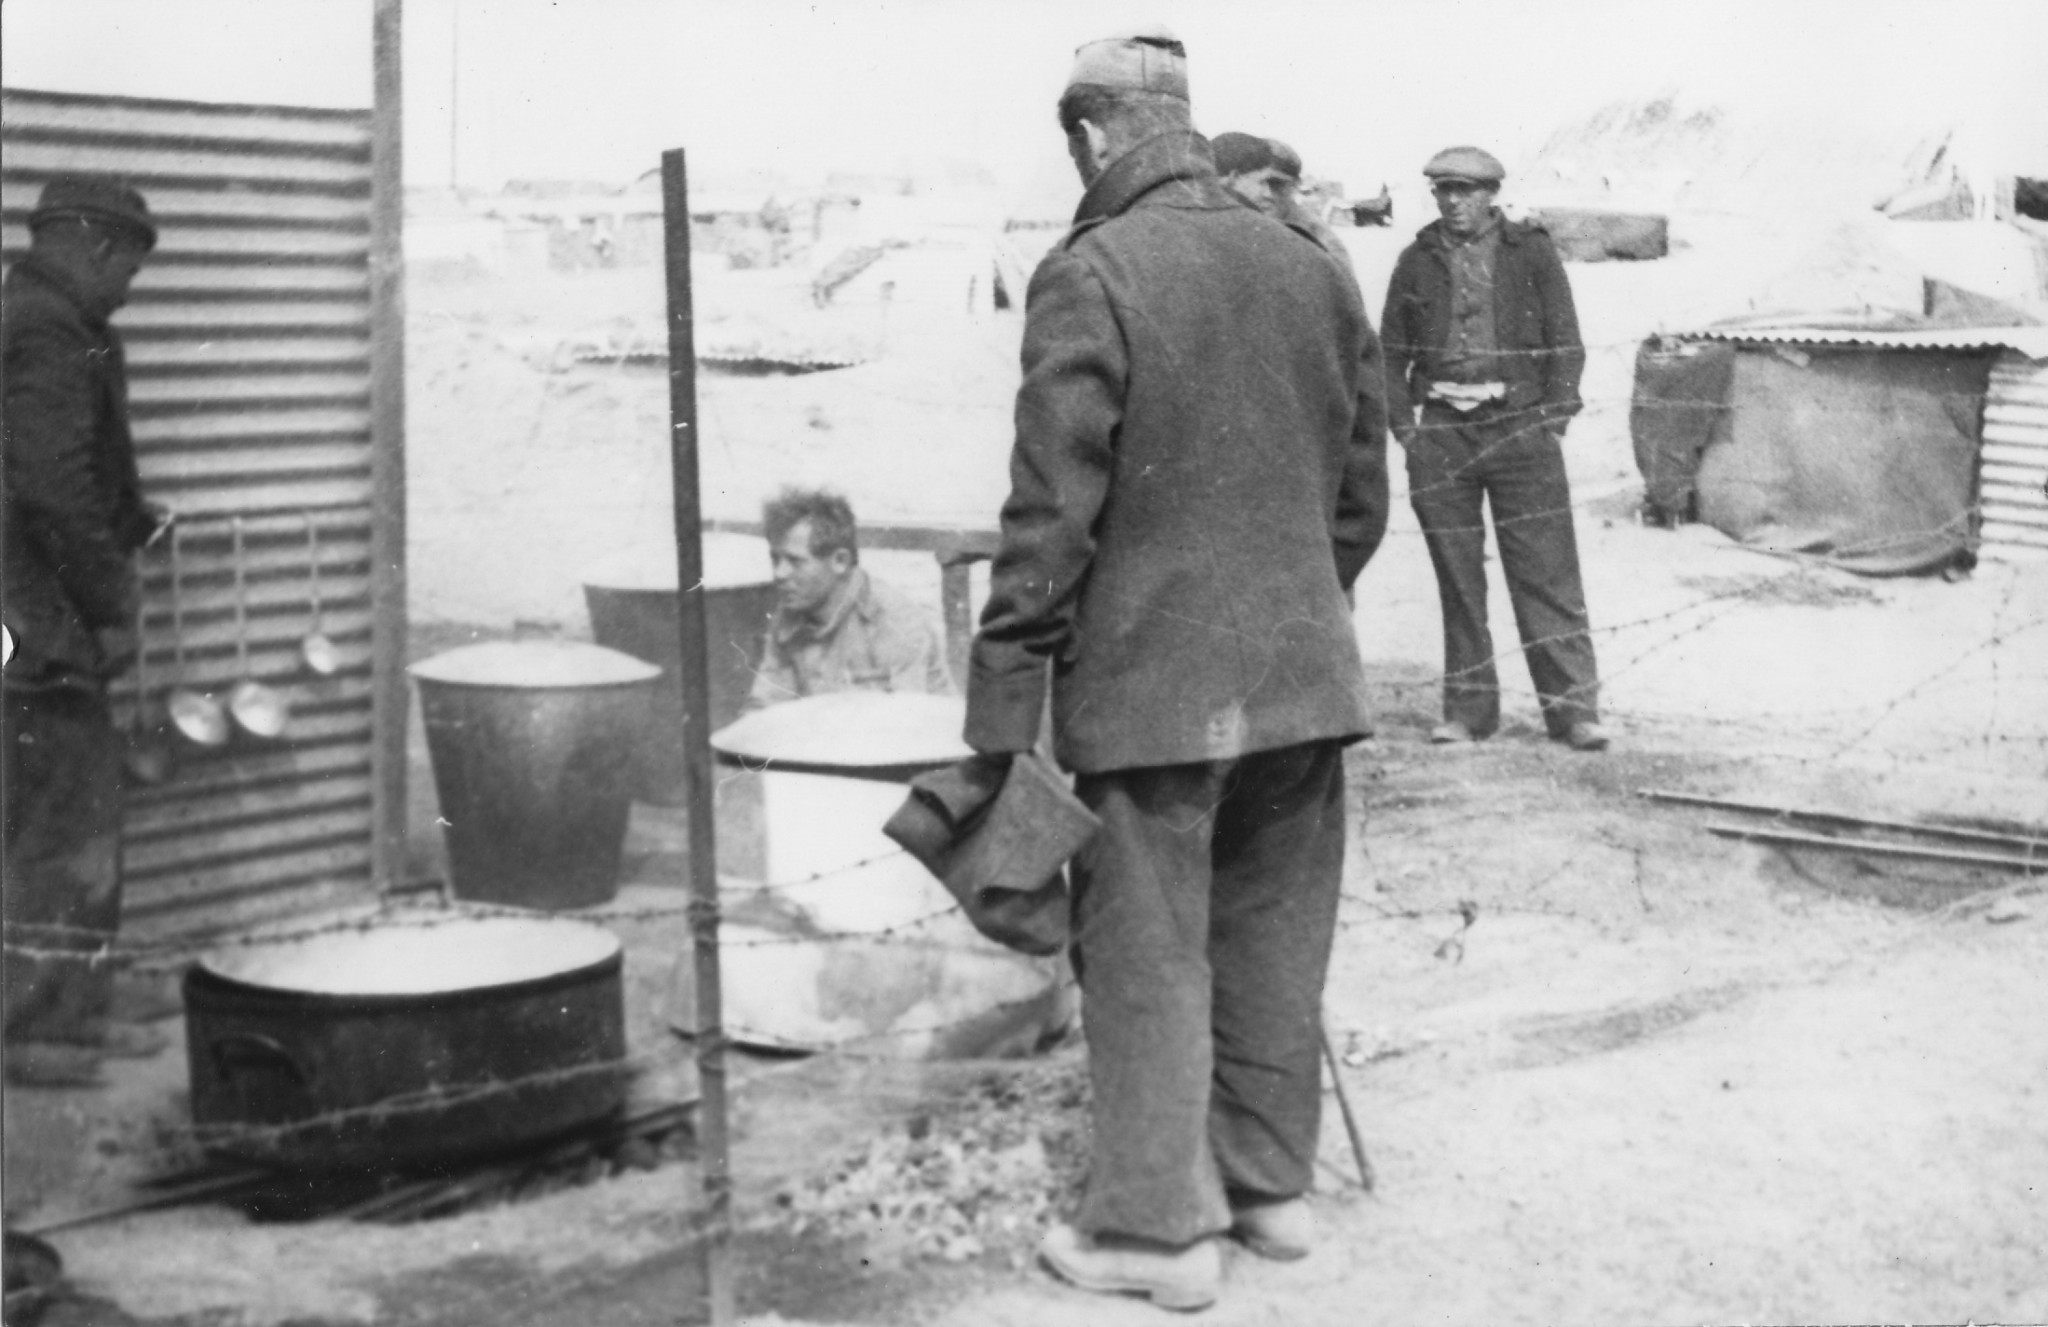 Camp des internationaux, Argelès-sur-Mer, mars 1939.